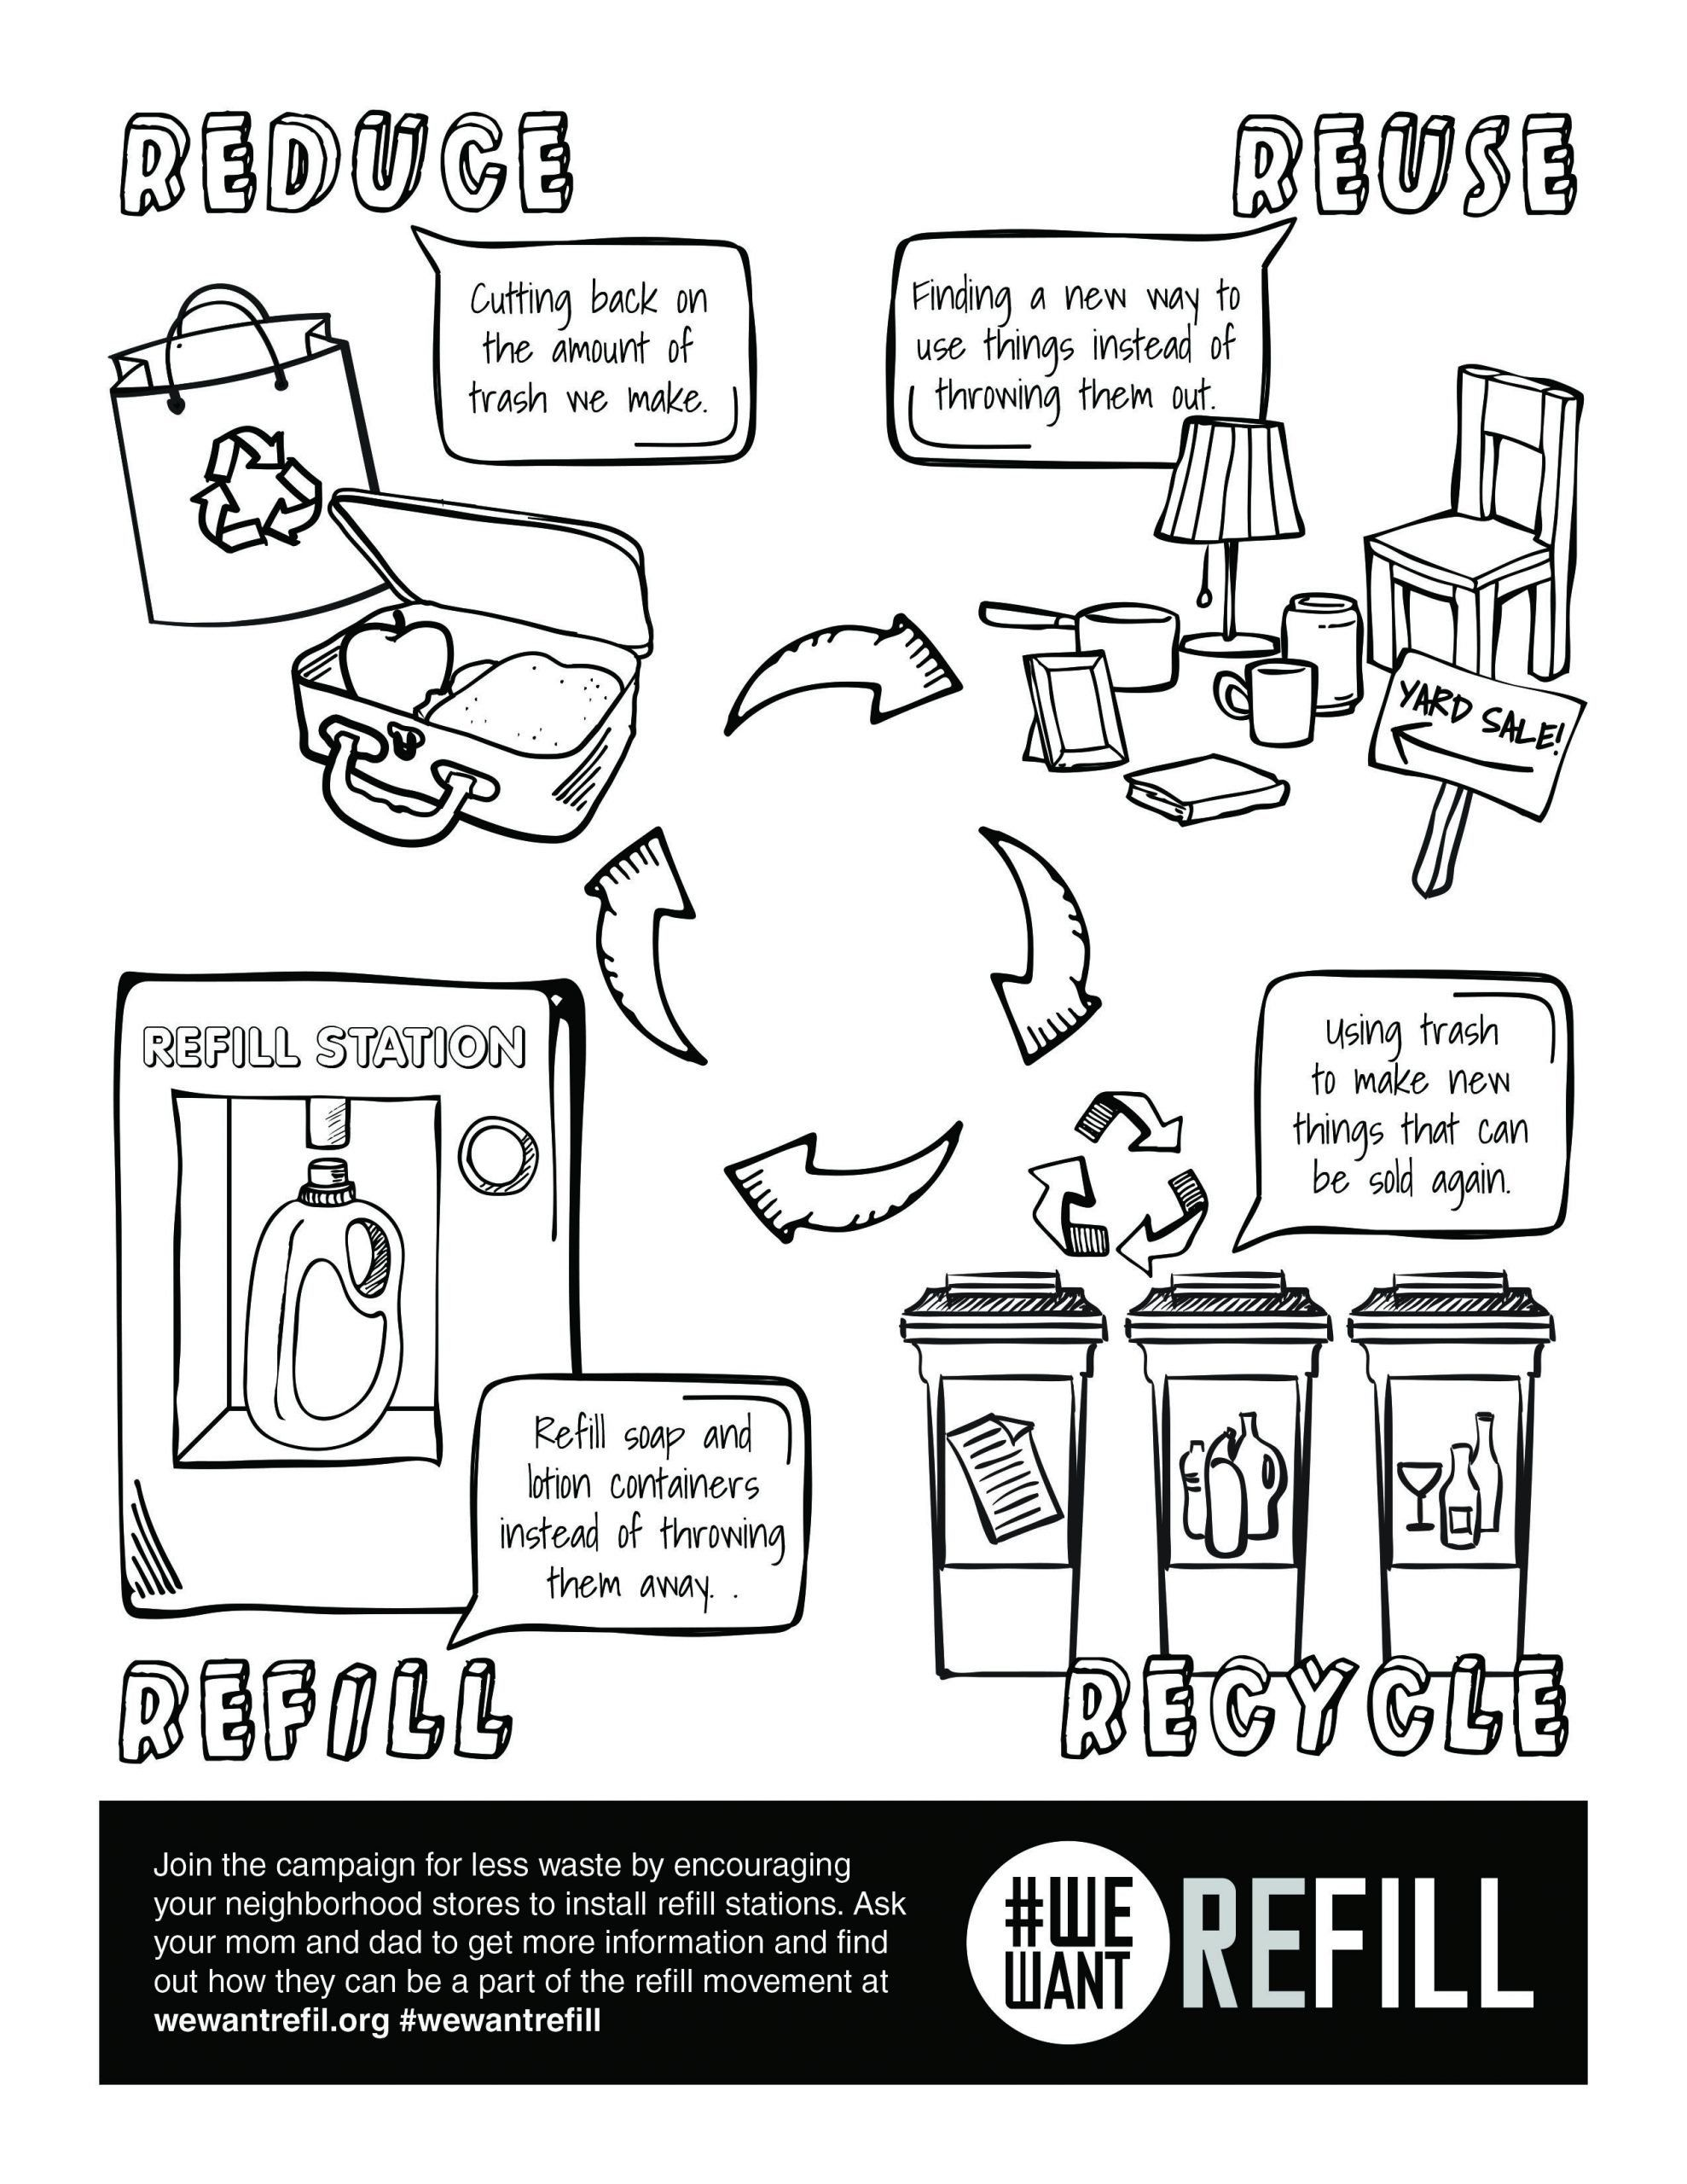 Reduce Reuse Recycle Worksheet Free Downloadable Coloring